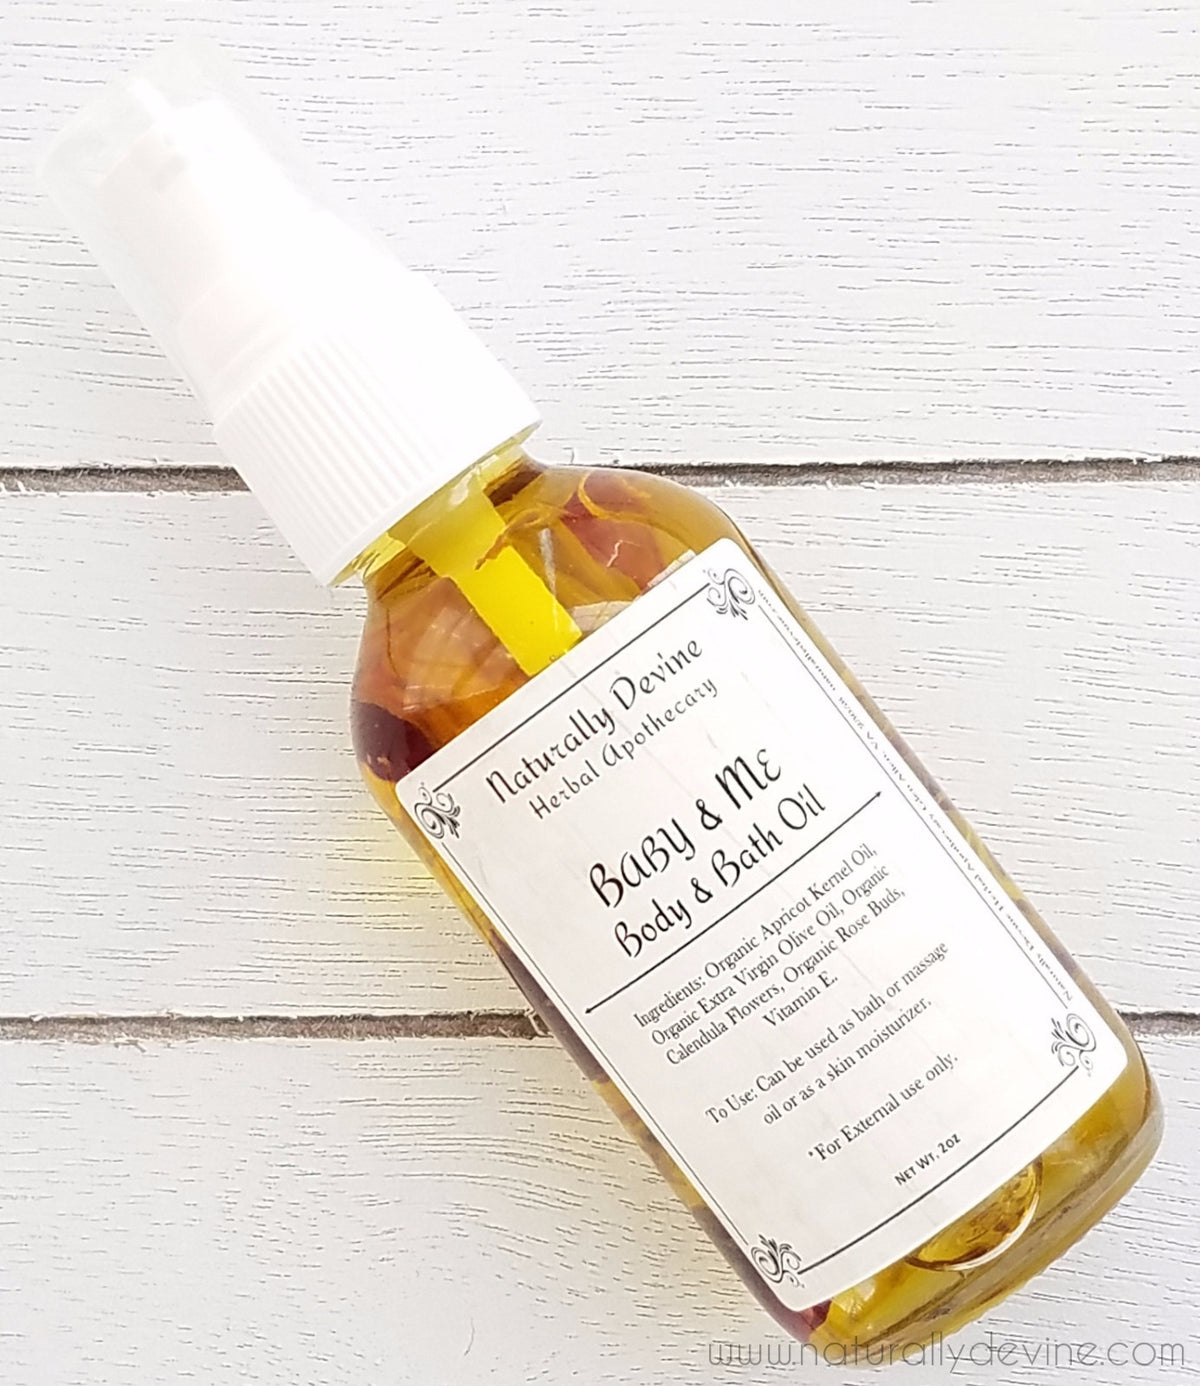 Baby & Me Body Oil by Naturally Devine Herbal Apothecary